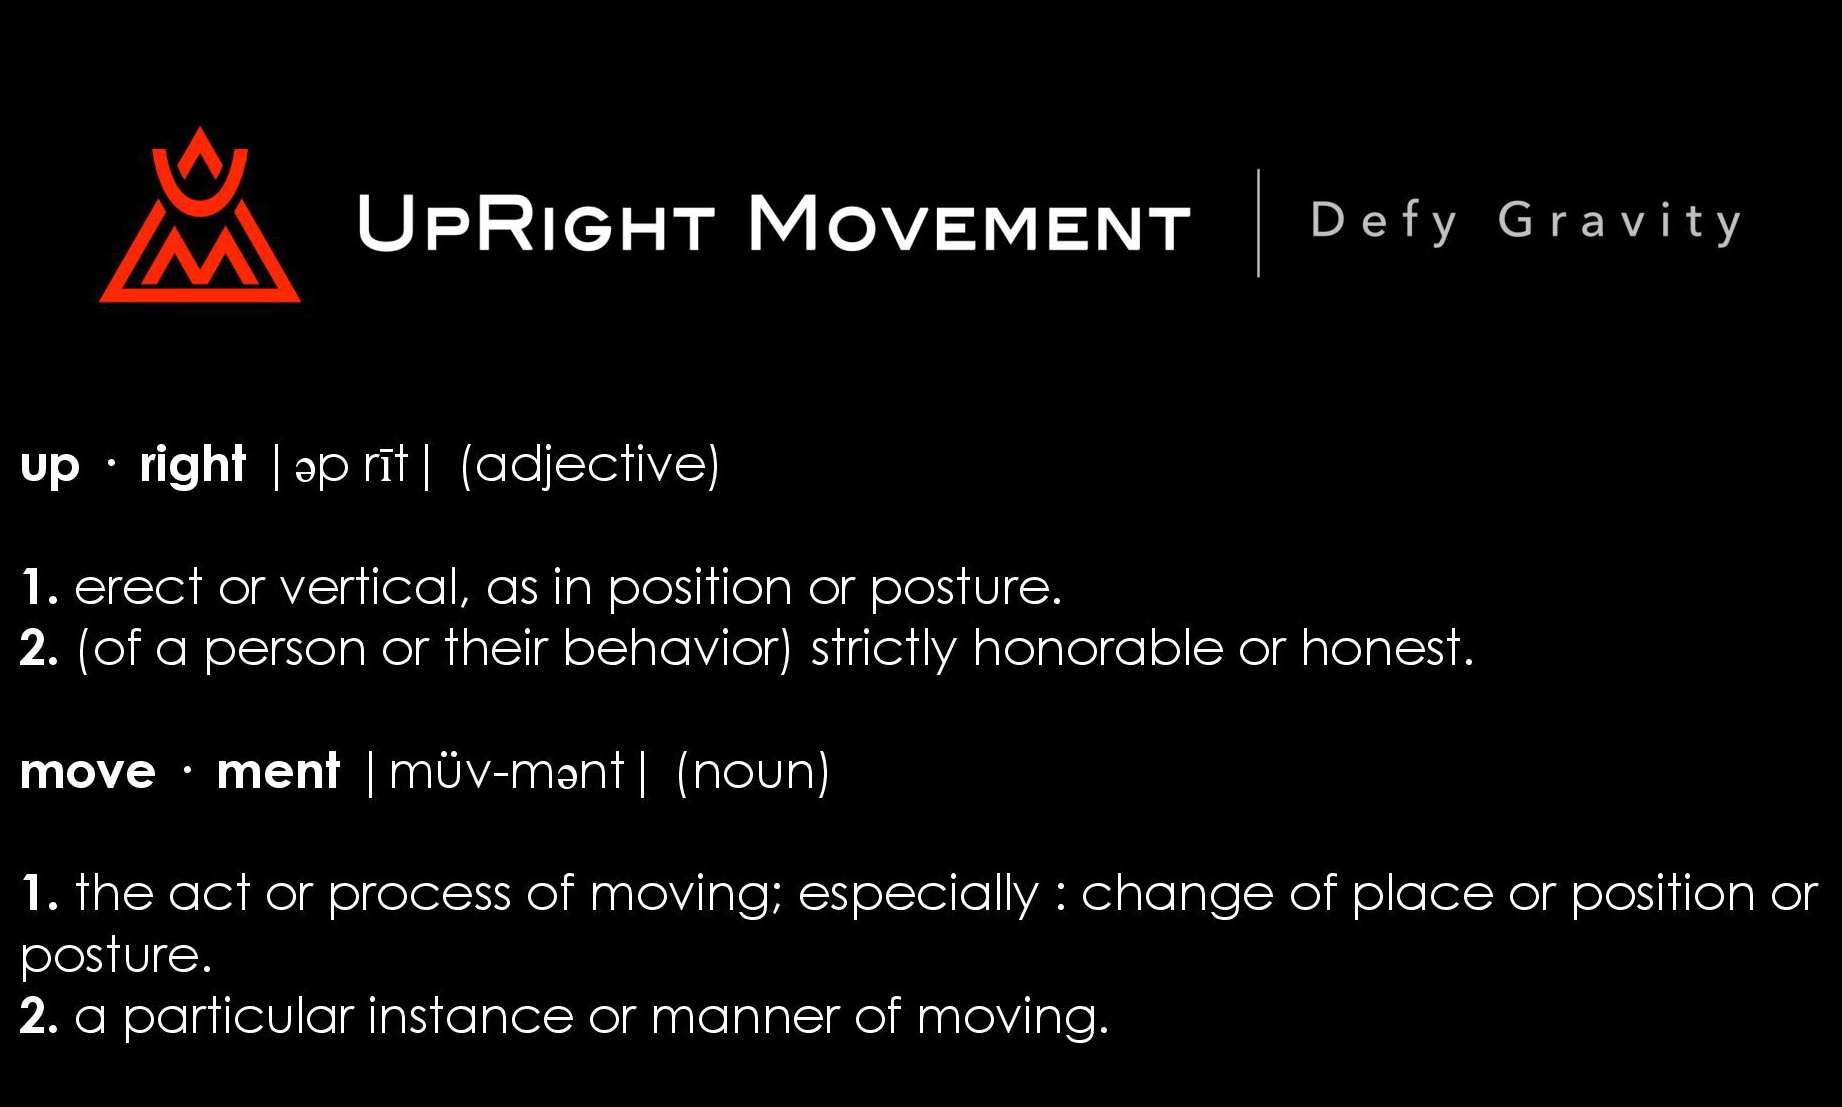 The Why, How, and What of UpRight Movement